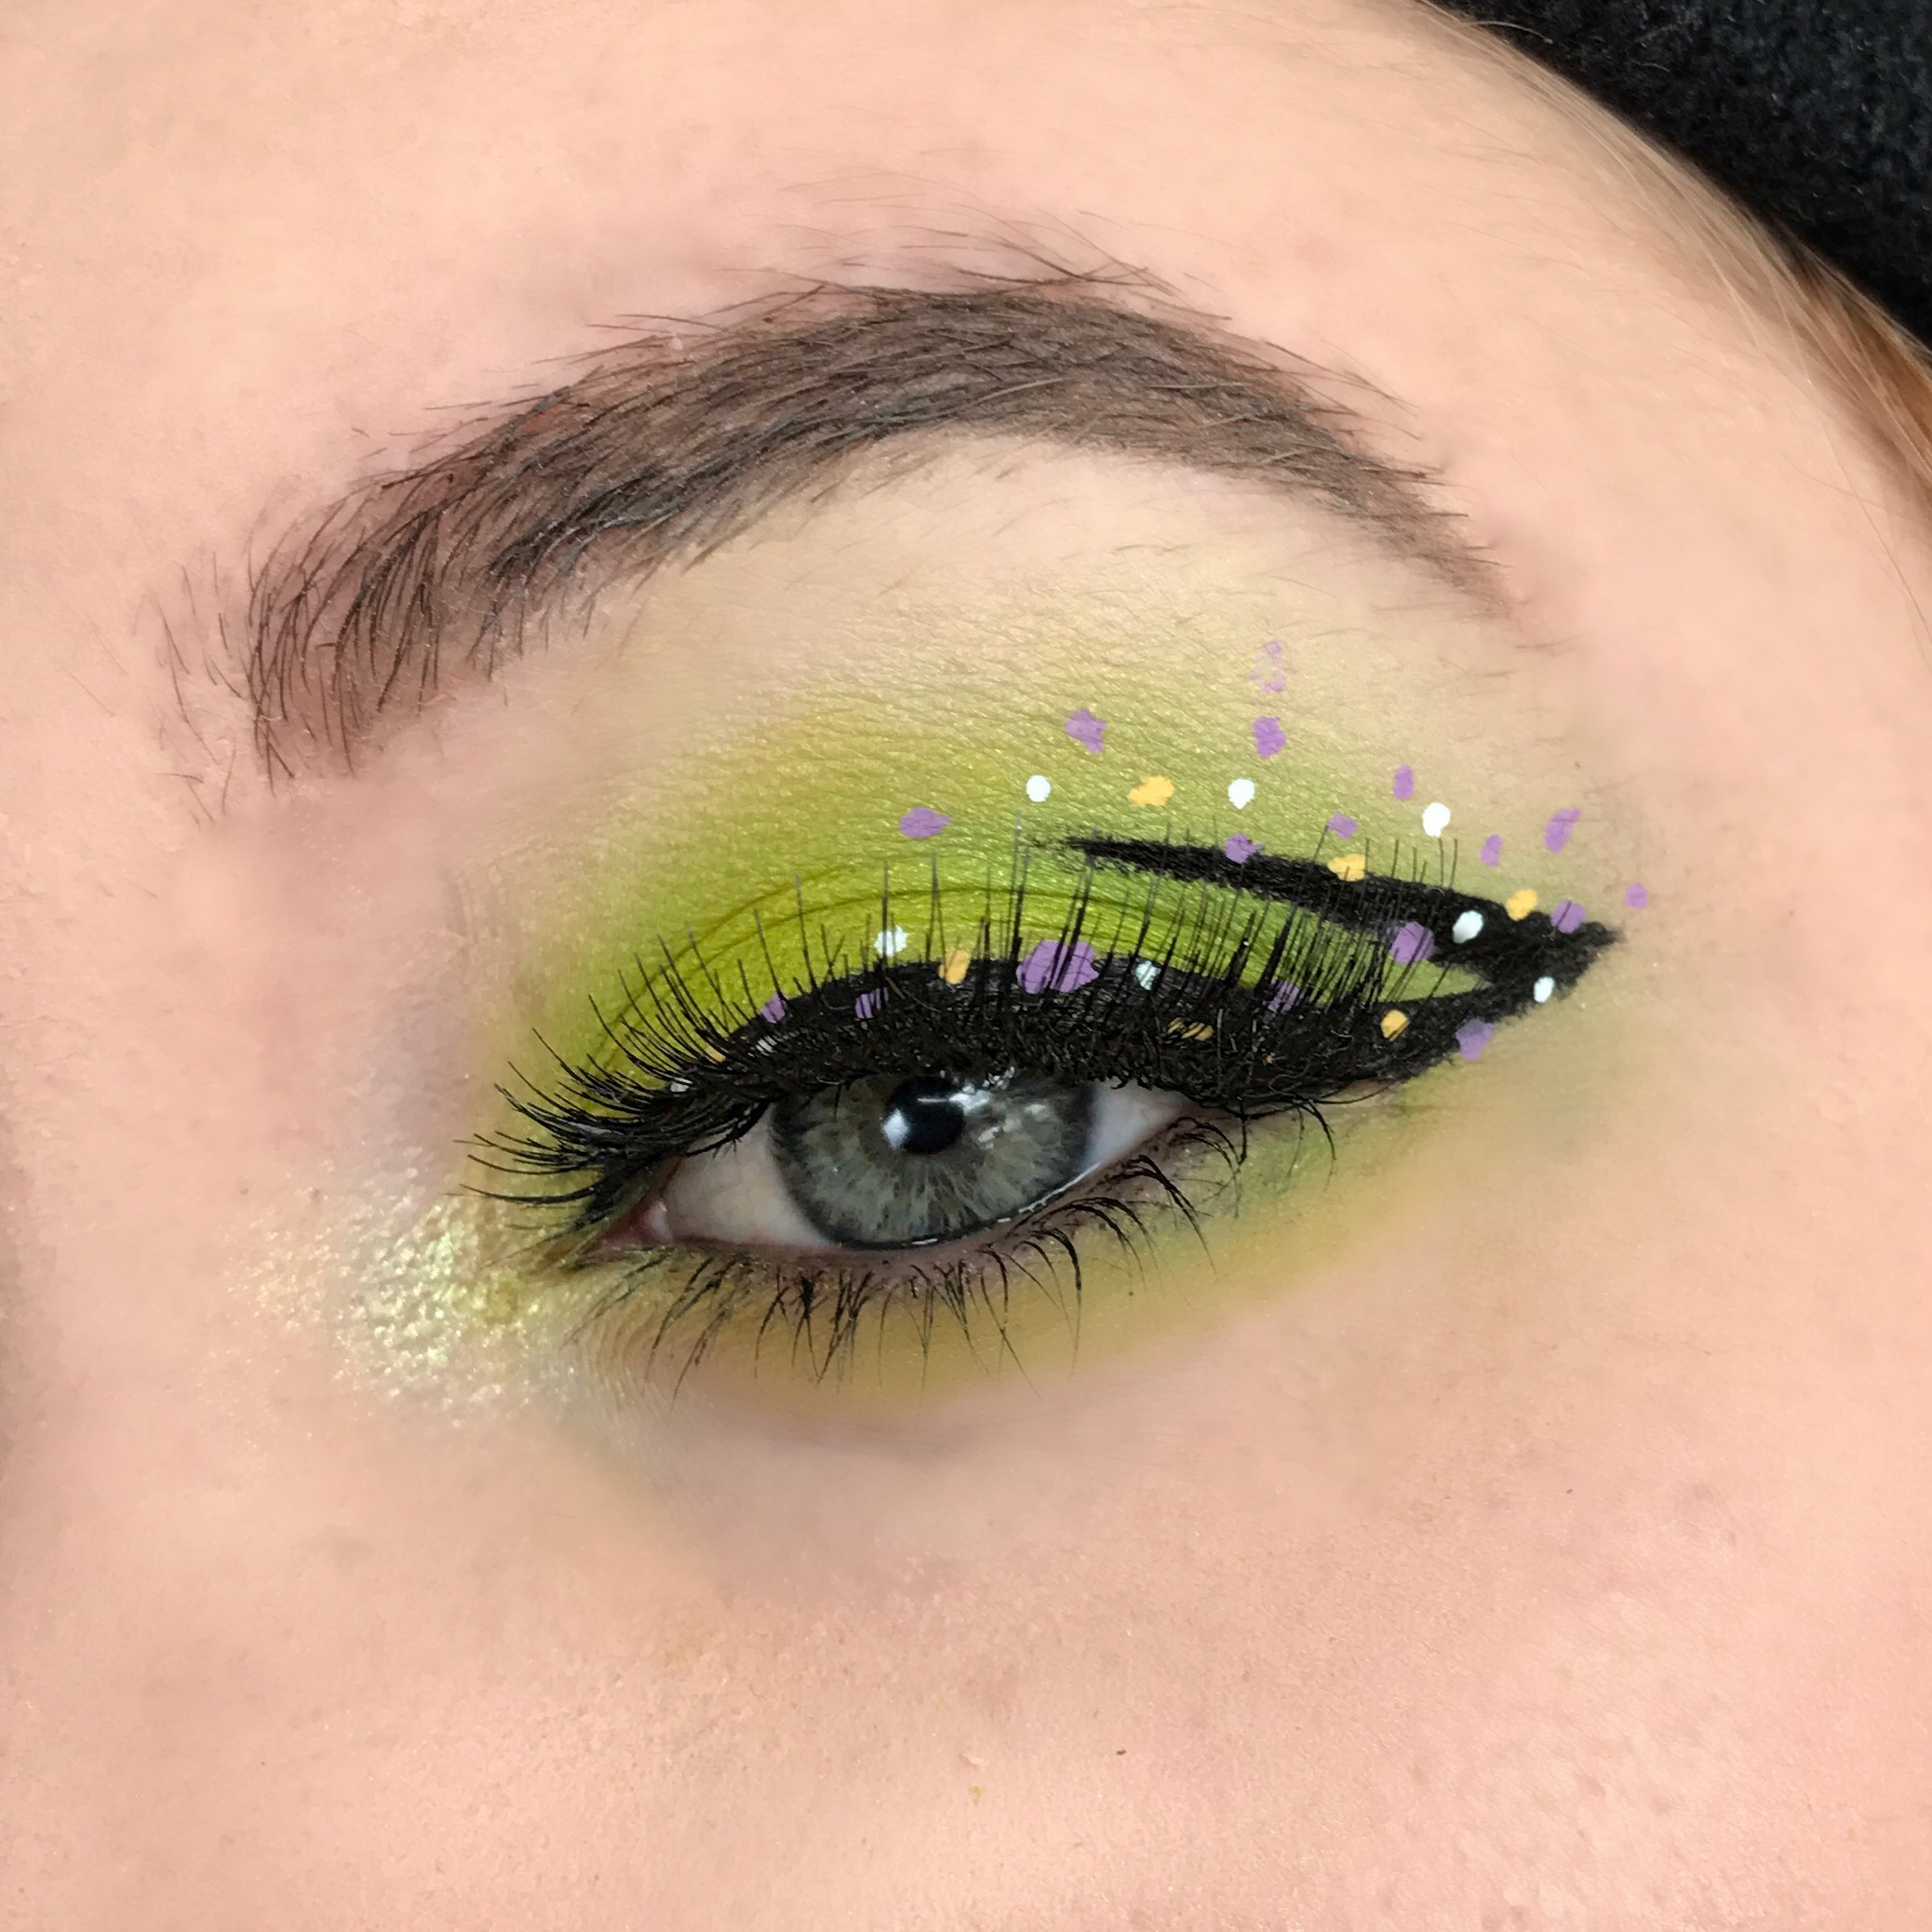 100 Days of Makeup: 57-63 — Pastel Sparkles